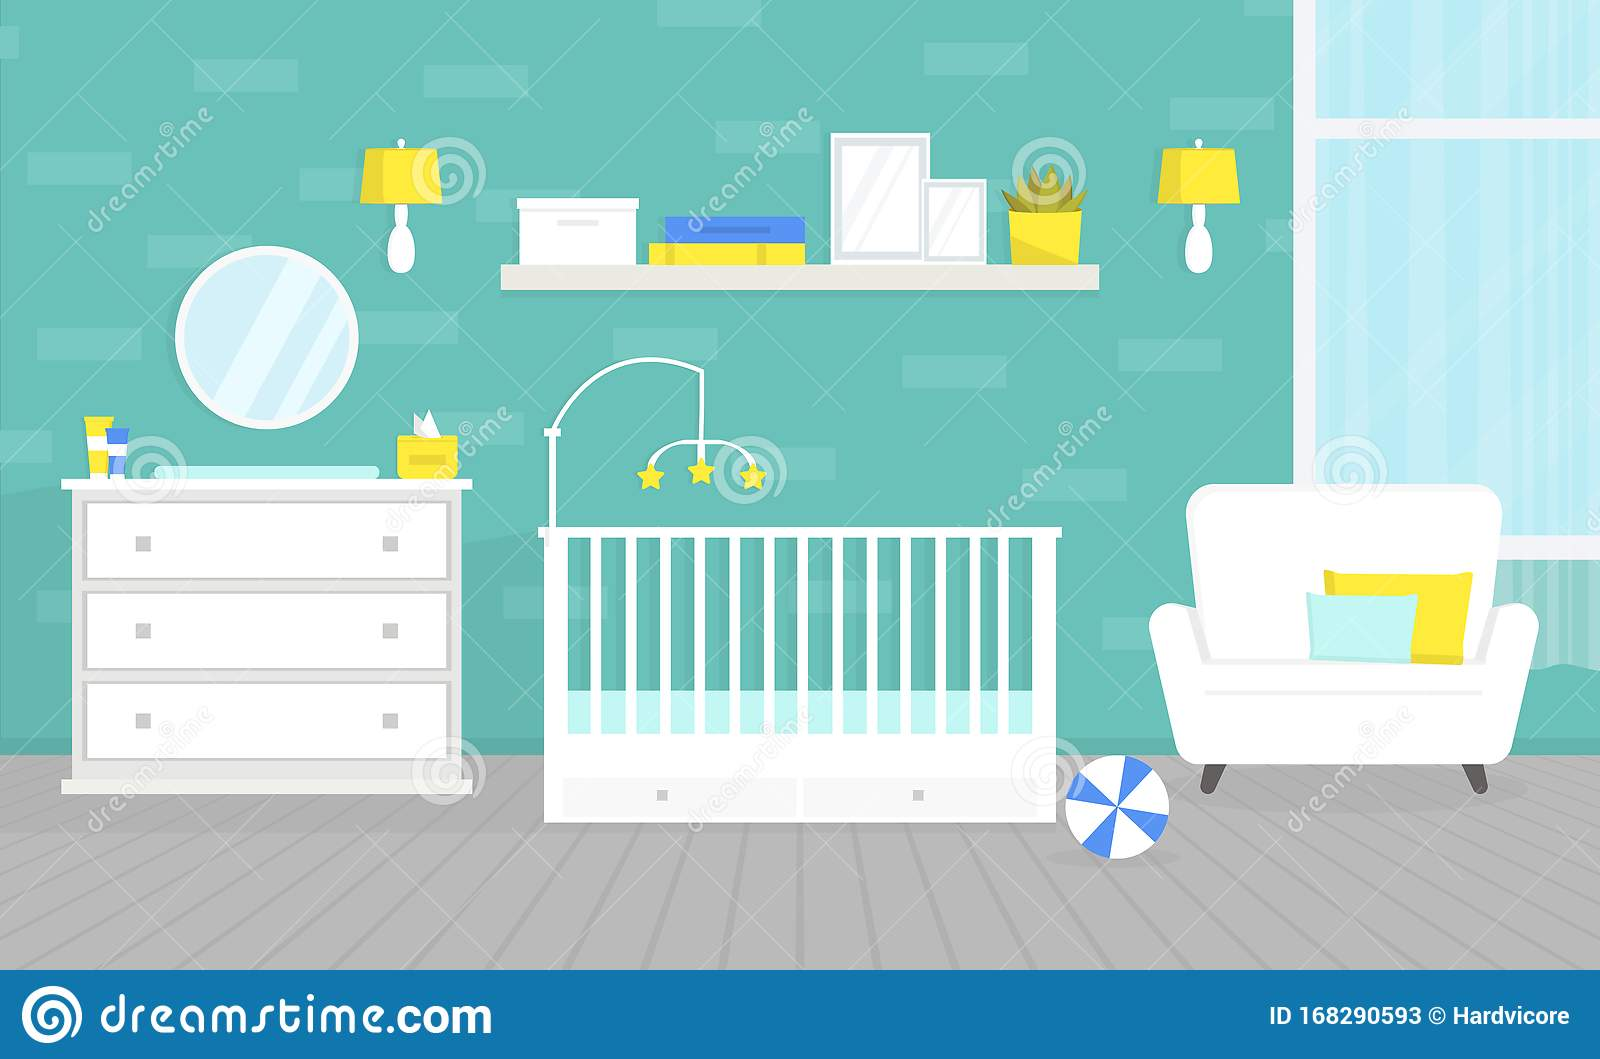 Picture of: Lovely Baby Room Interior With Furniture Crib For Newborn Changing Table Chest Of Drawers Nursery Home Design Stock Vector Illustration Of Bedroom Childhood 168290593